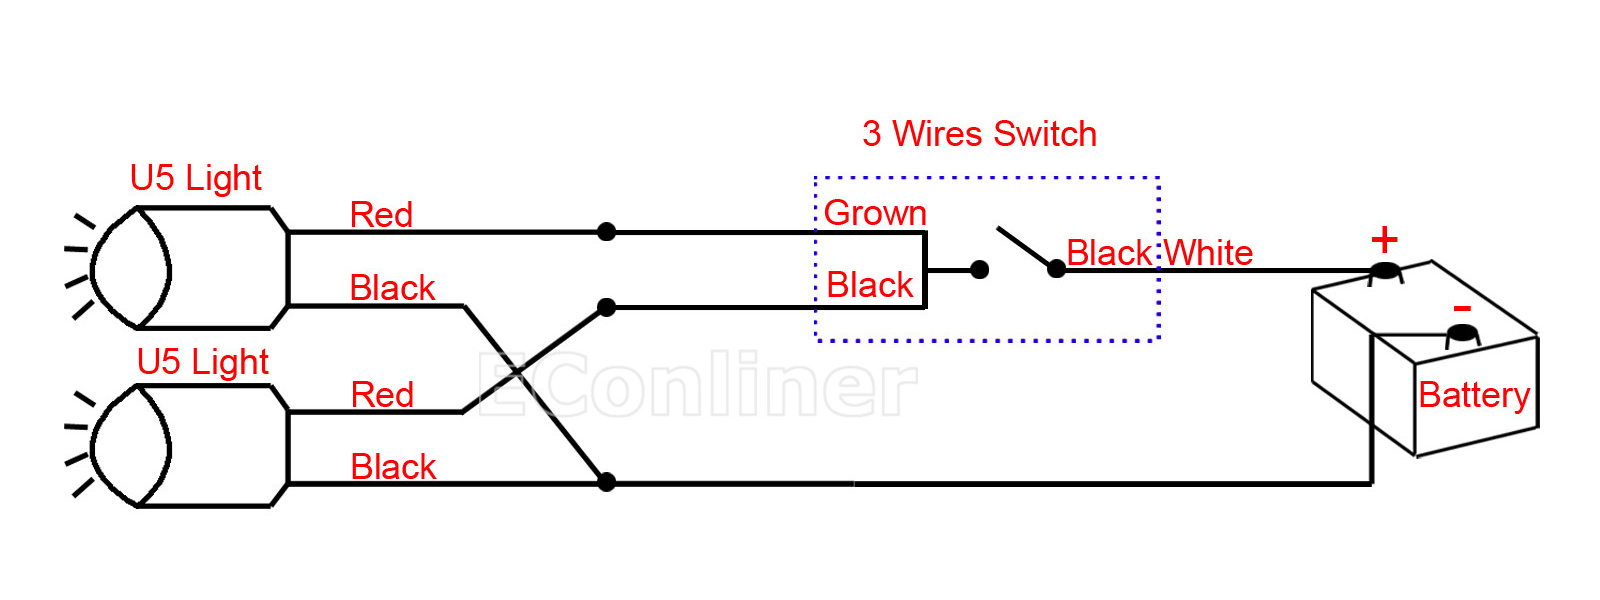 02 Road King Wiring Diagram Just Another Blog 2003 Harley Davidson Ultra Classic 2008 Rh Sportingpenistone Org Uk Sportster Electra Glide